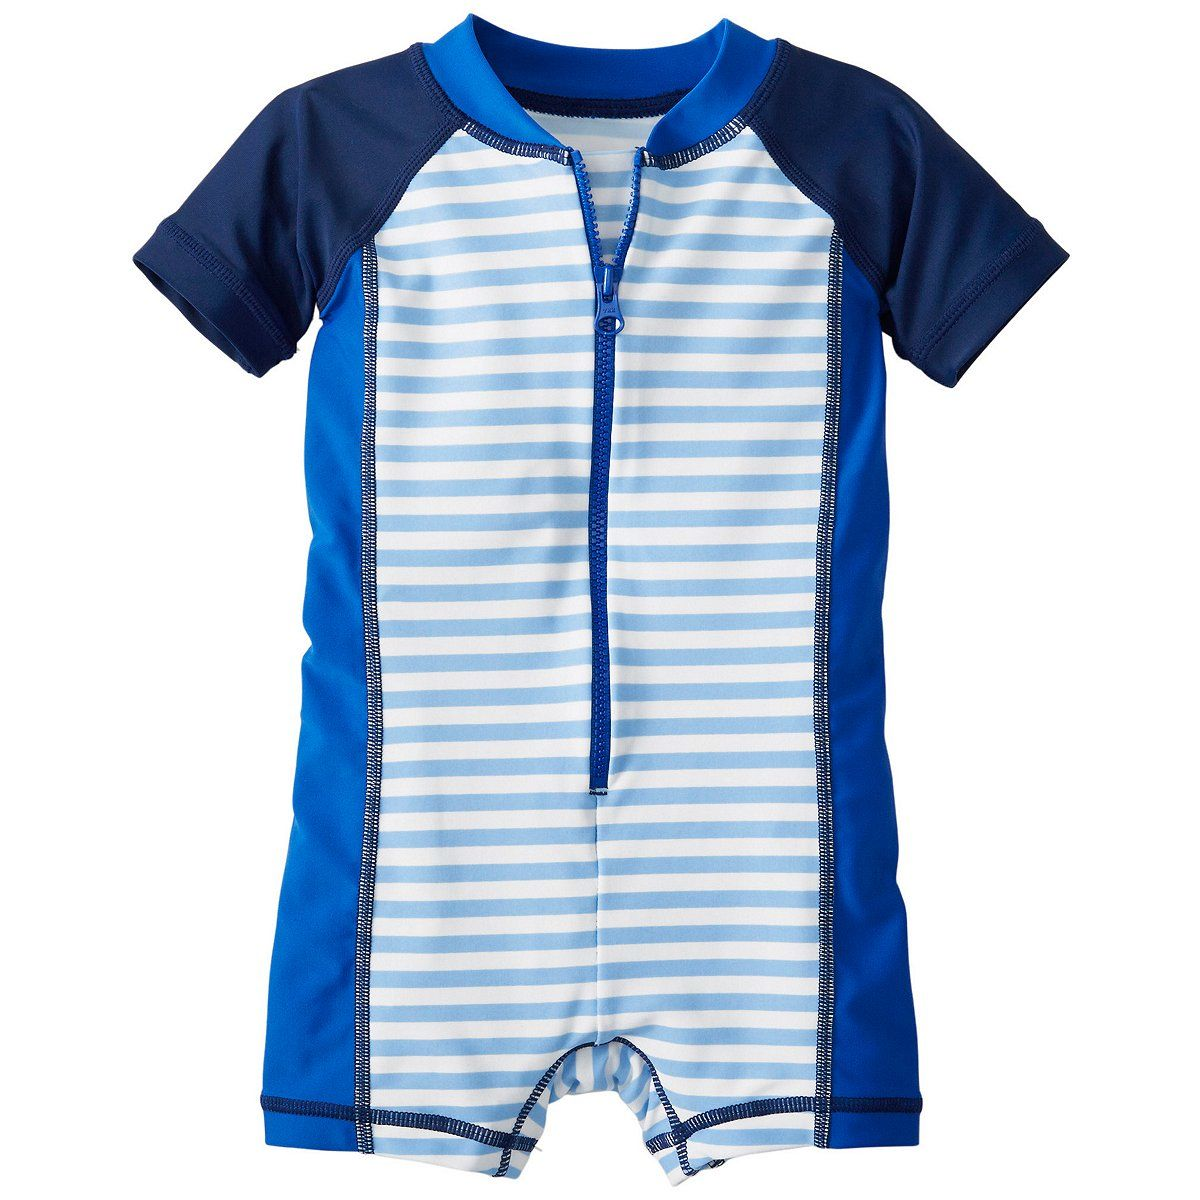 Swimmy Rash Guard Baby Suit by Hanna Andersson | baby boy wish list ...